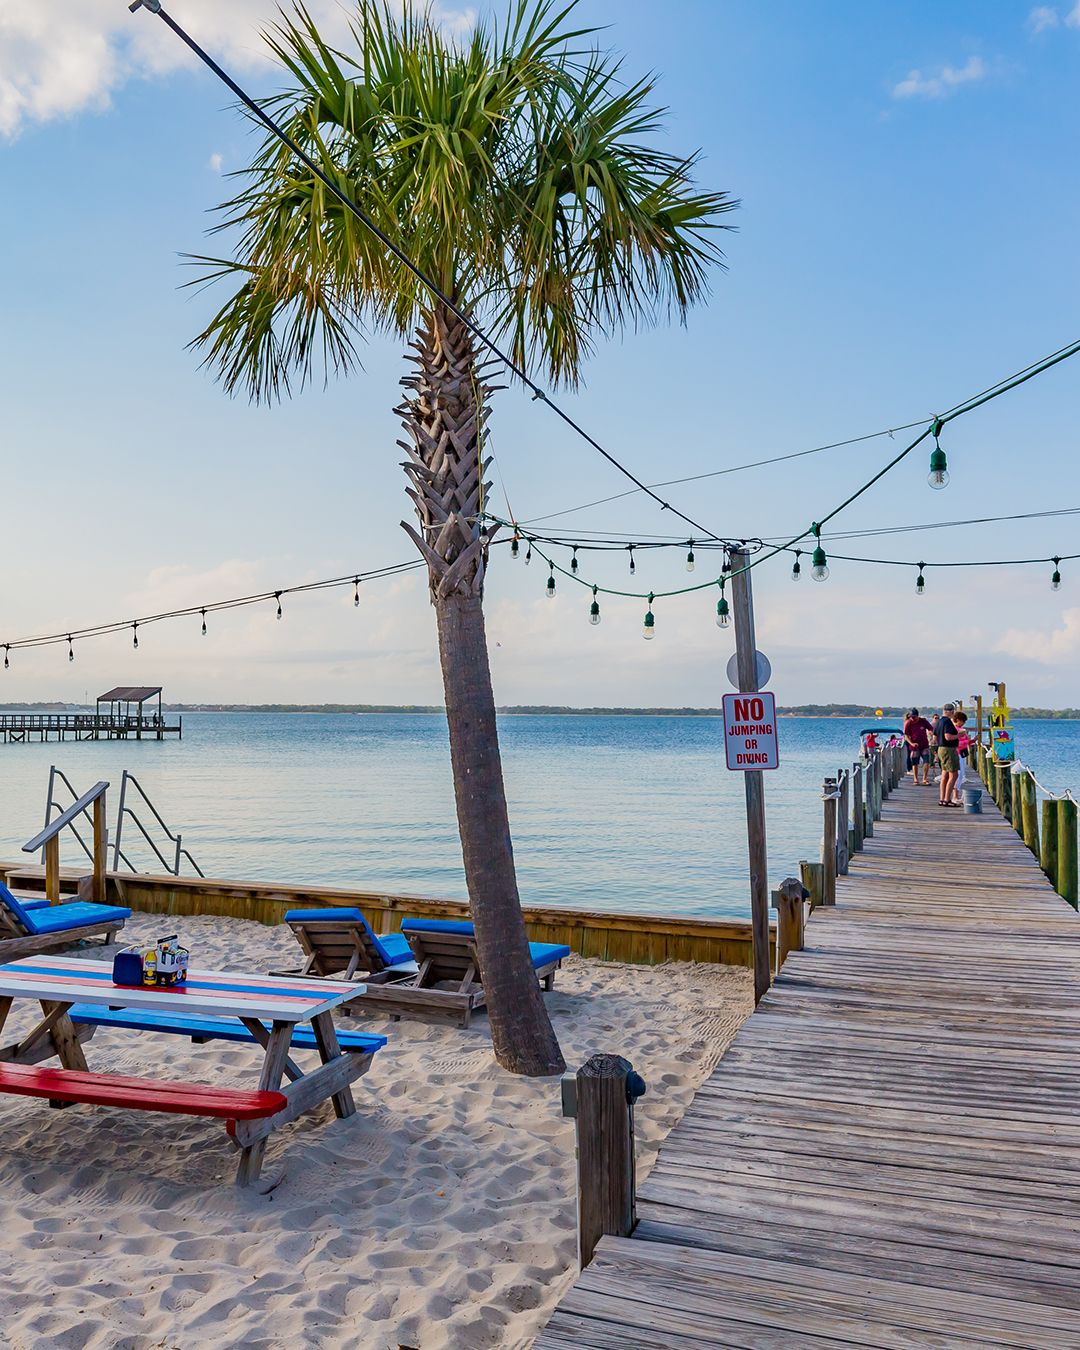 You Came To The Surf And Sand To Party Right Our Beach Bar Guide Will Help You Get Loose Without Having To Jump Florida Vacation Spots Beach Bars Sands Hotel